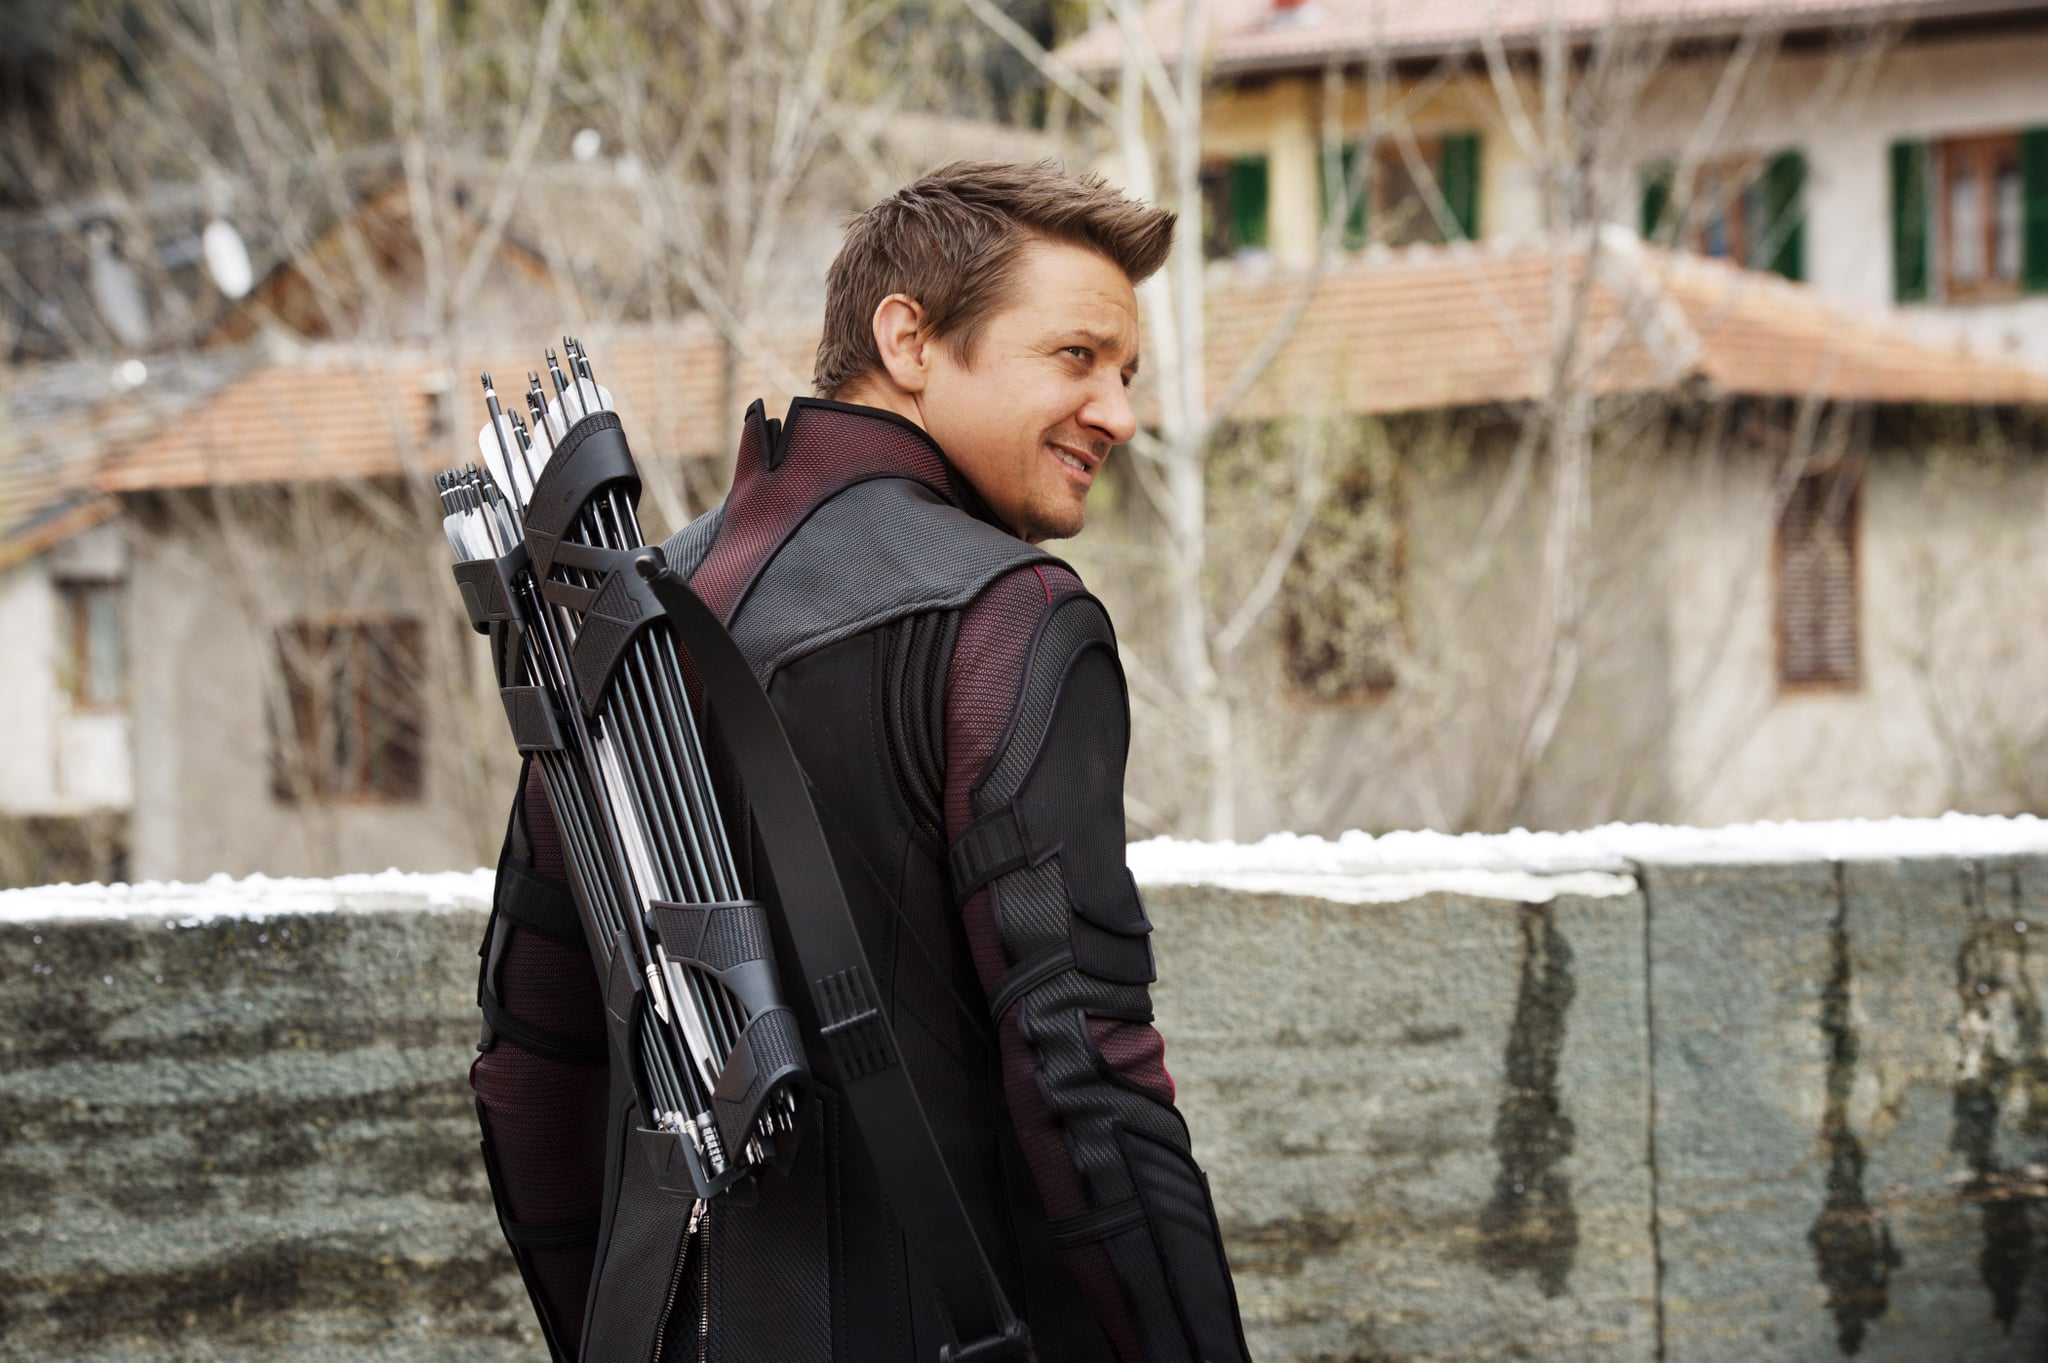 AVENGERS: AGE OF ULTRON, Jeremy Renner as Hawkeye/Clint Barton, 2015. ph: Jay Maidment /  Walt Disney Studios Motion Pictures / courtesy Everett Collection